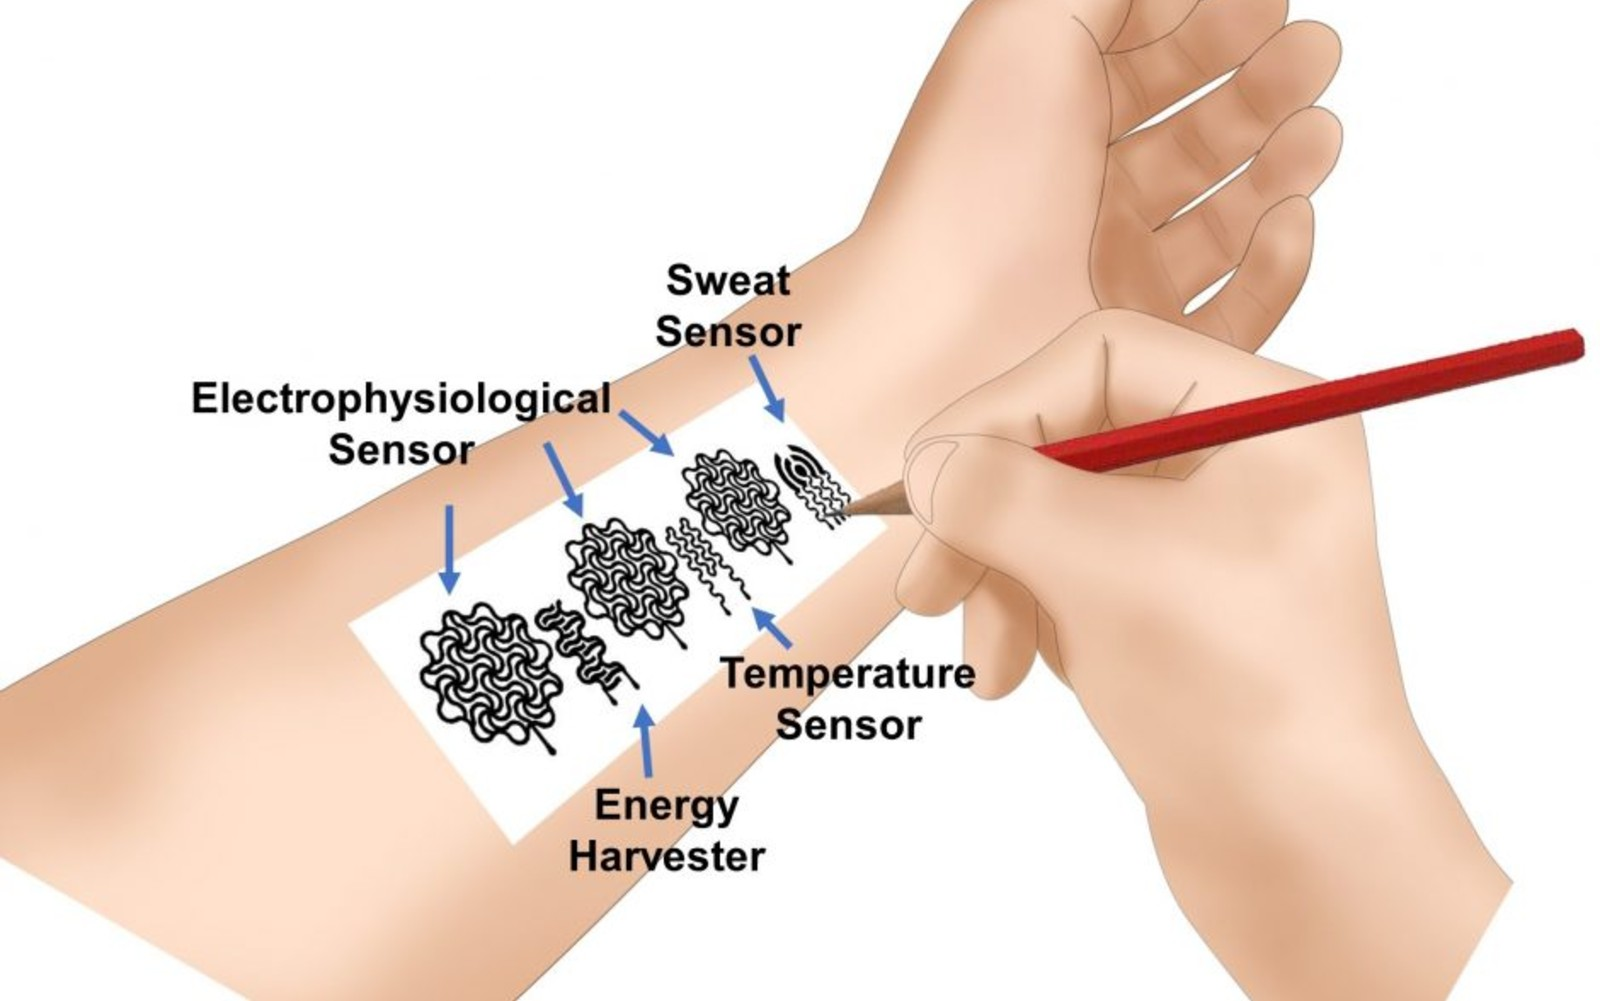 Researchers made a medical wearable using a pencil and paper